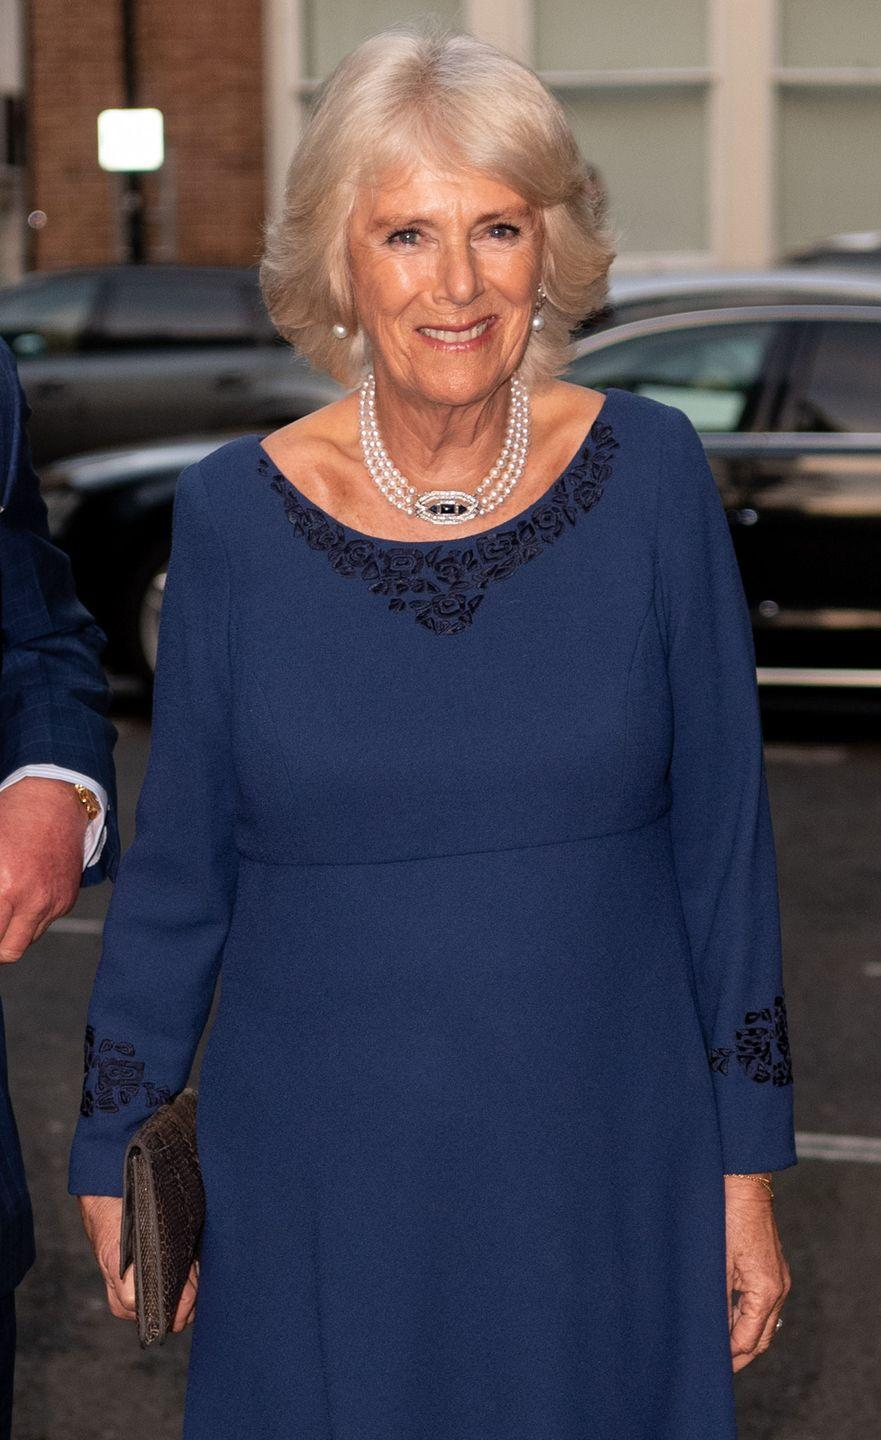 <p>Camilla, Duchess of Cornwall paired a navy dress with black embroidery with a pearl and sapphire necklace and drop earrings for an Age UK Tea at Spencer House in honor of Prince Charles's 70th birthday. </p>